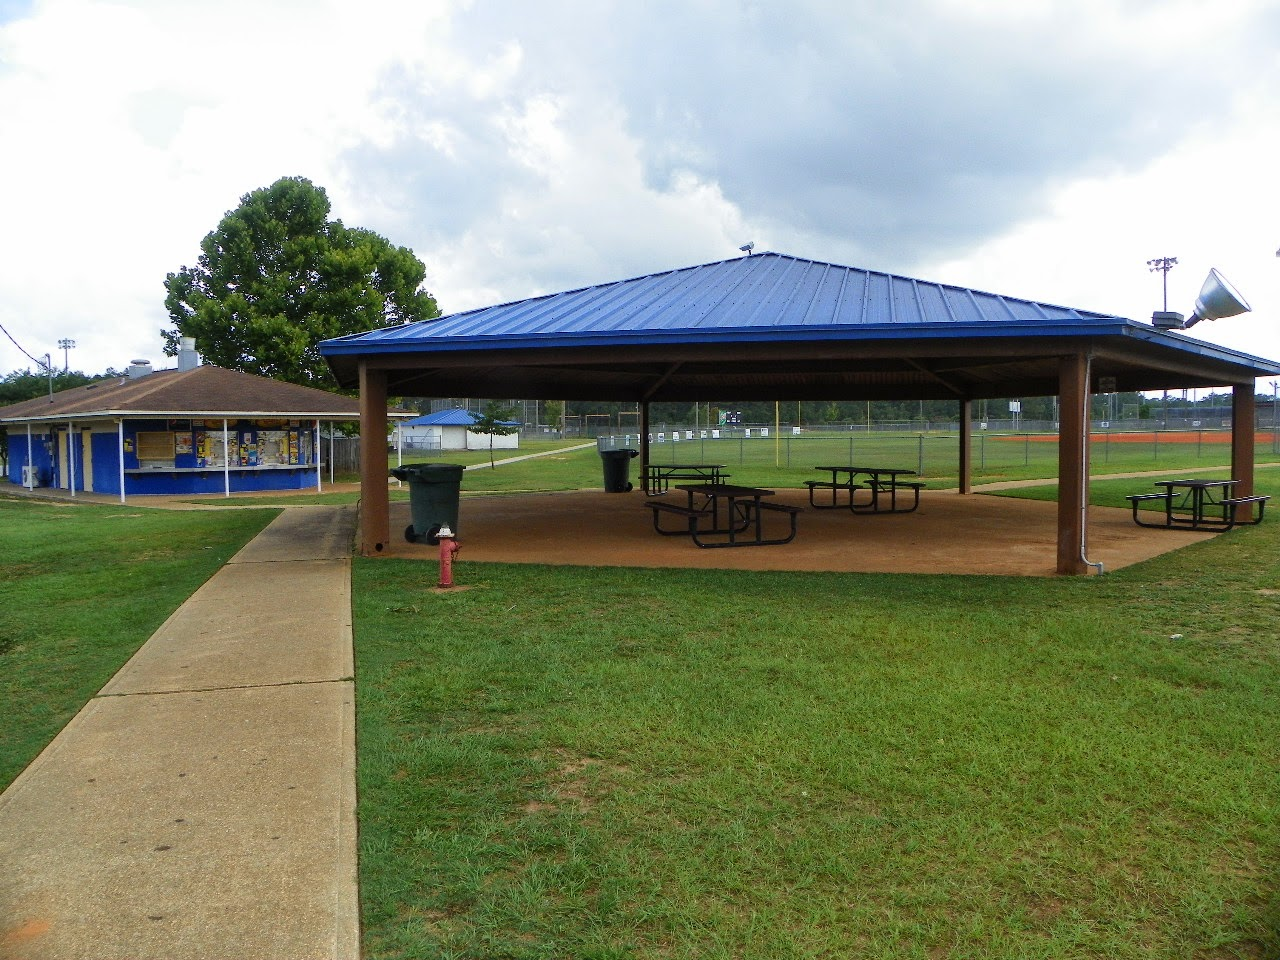 Pavilion and picnic area at John R. Jones Jr. Athletic Complex